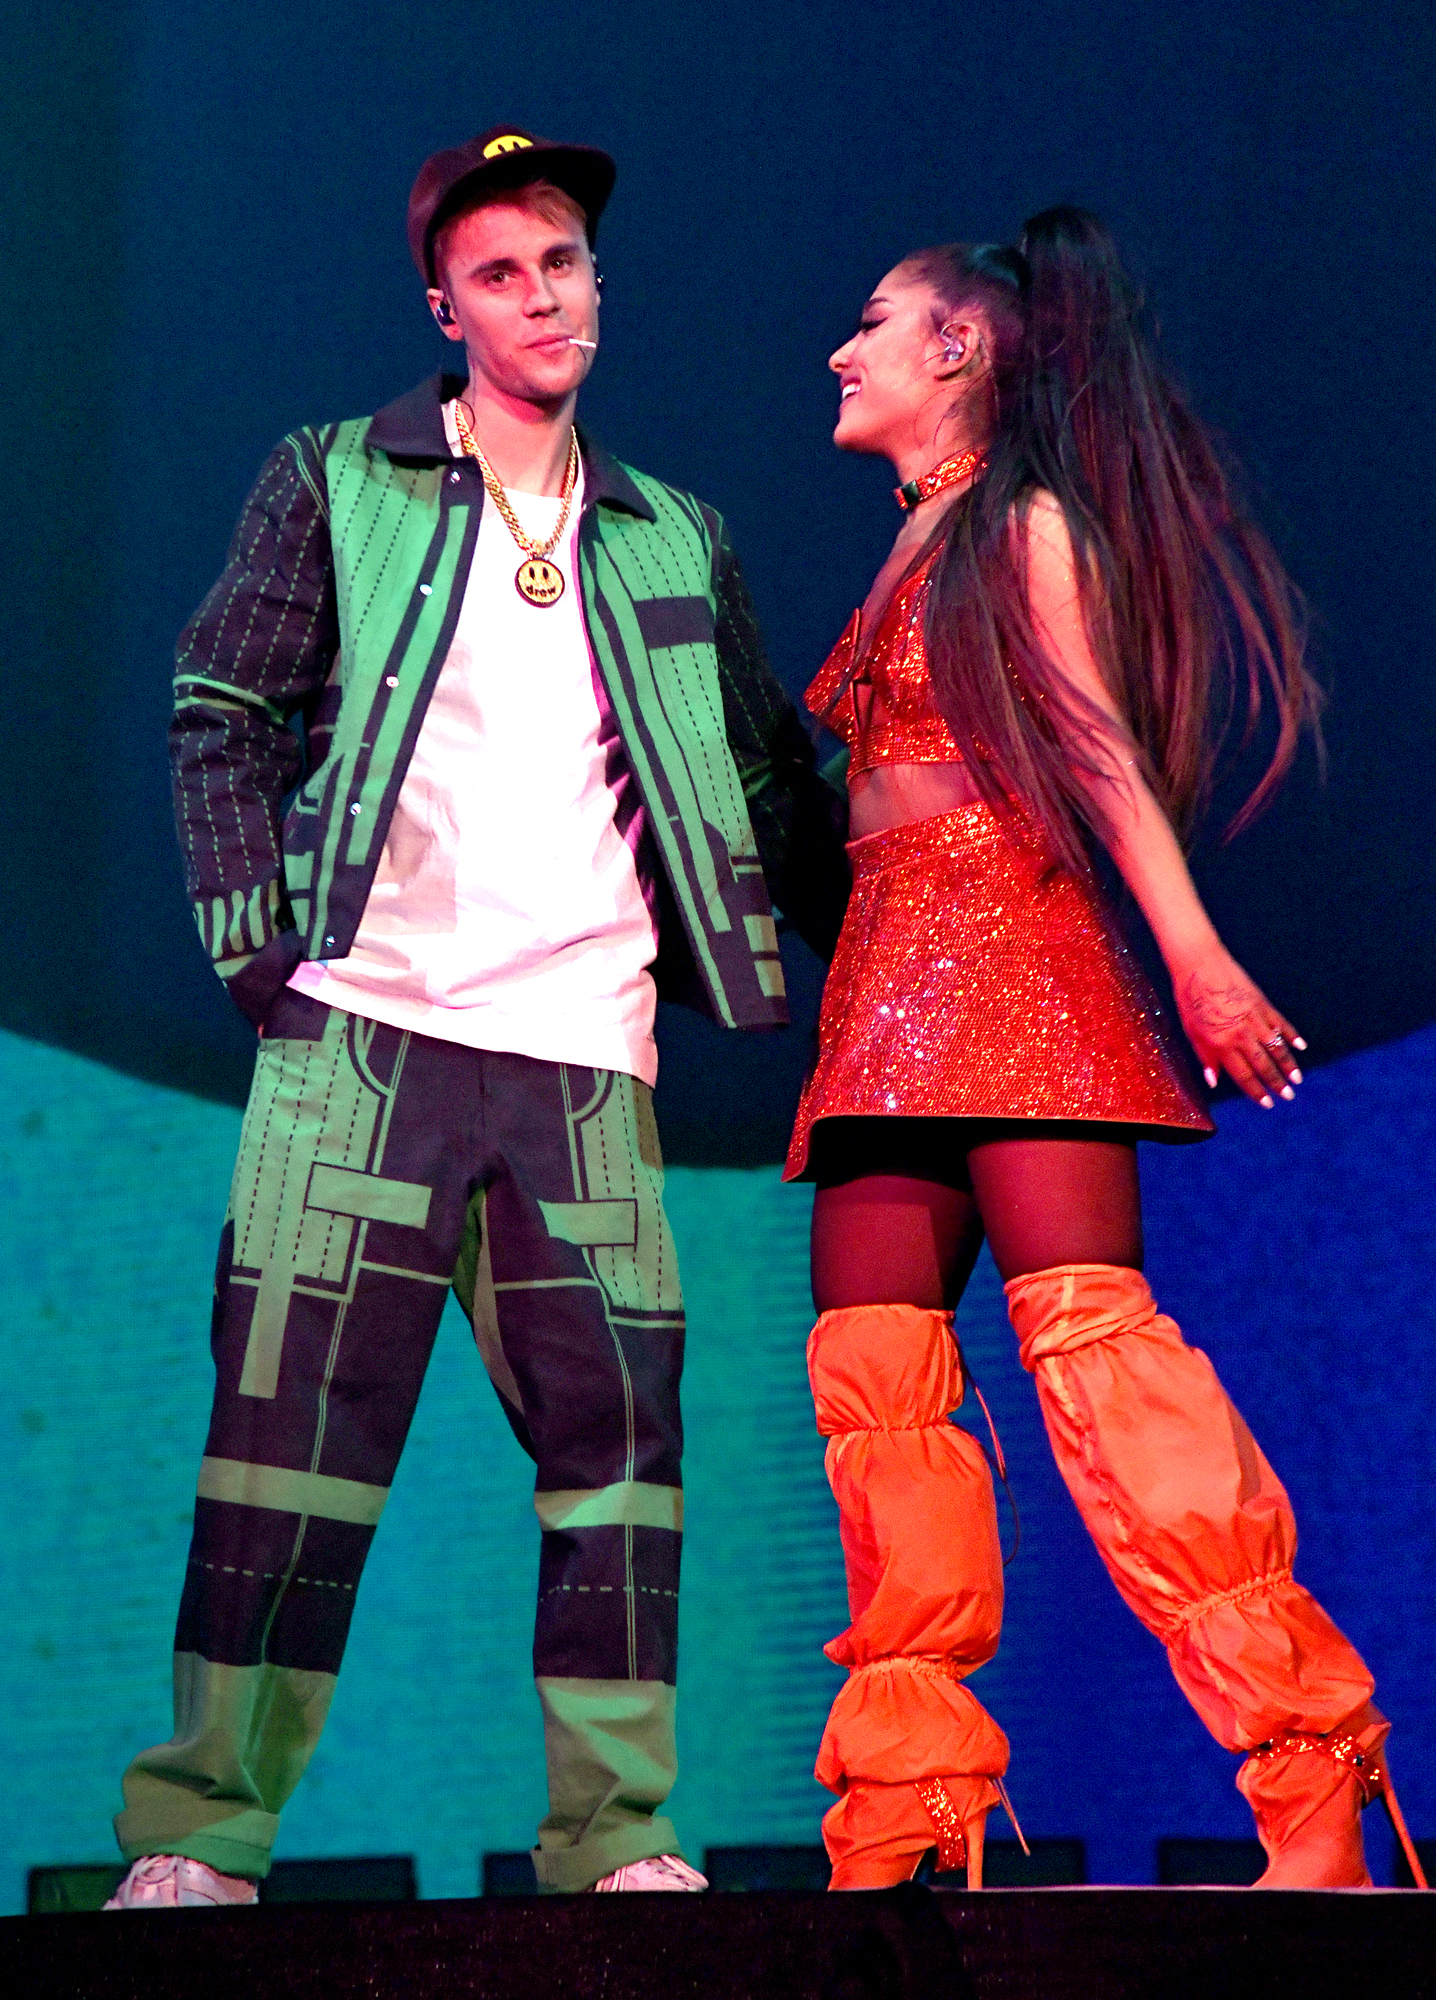 Justin Bieber performs with Ariana Grande at Coachella